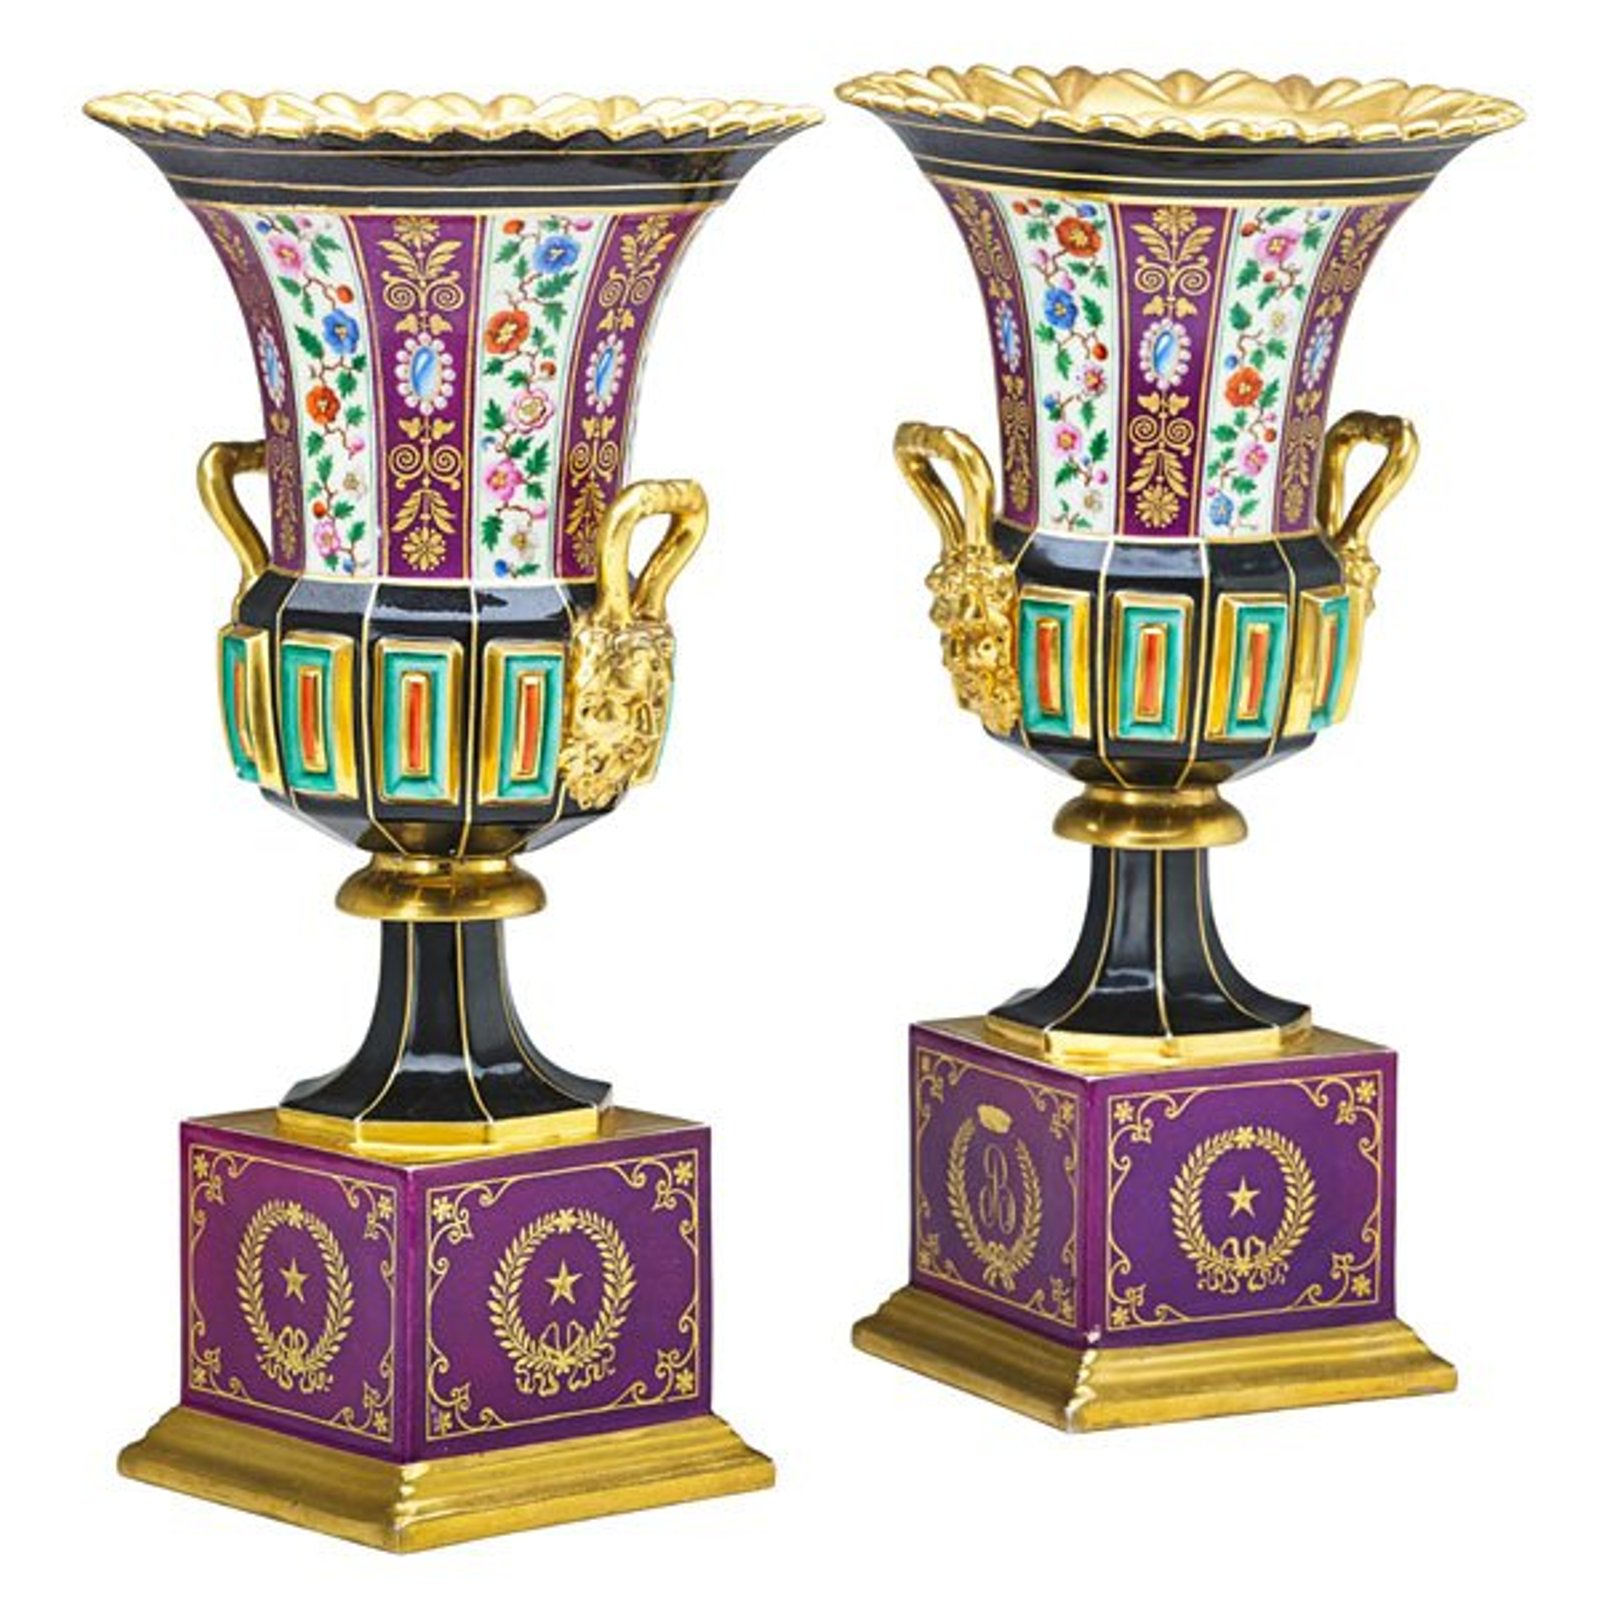 Pair of French Paris Porcelain Vases 19th Century